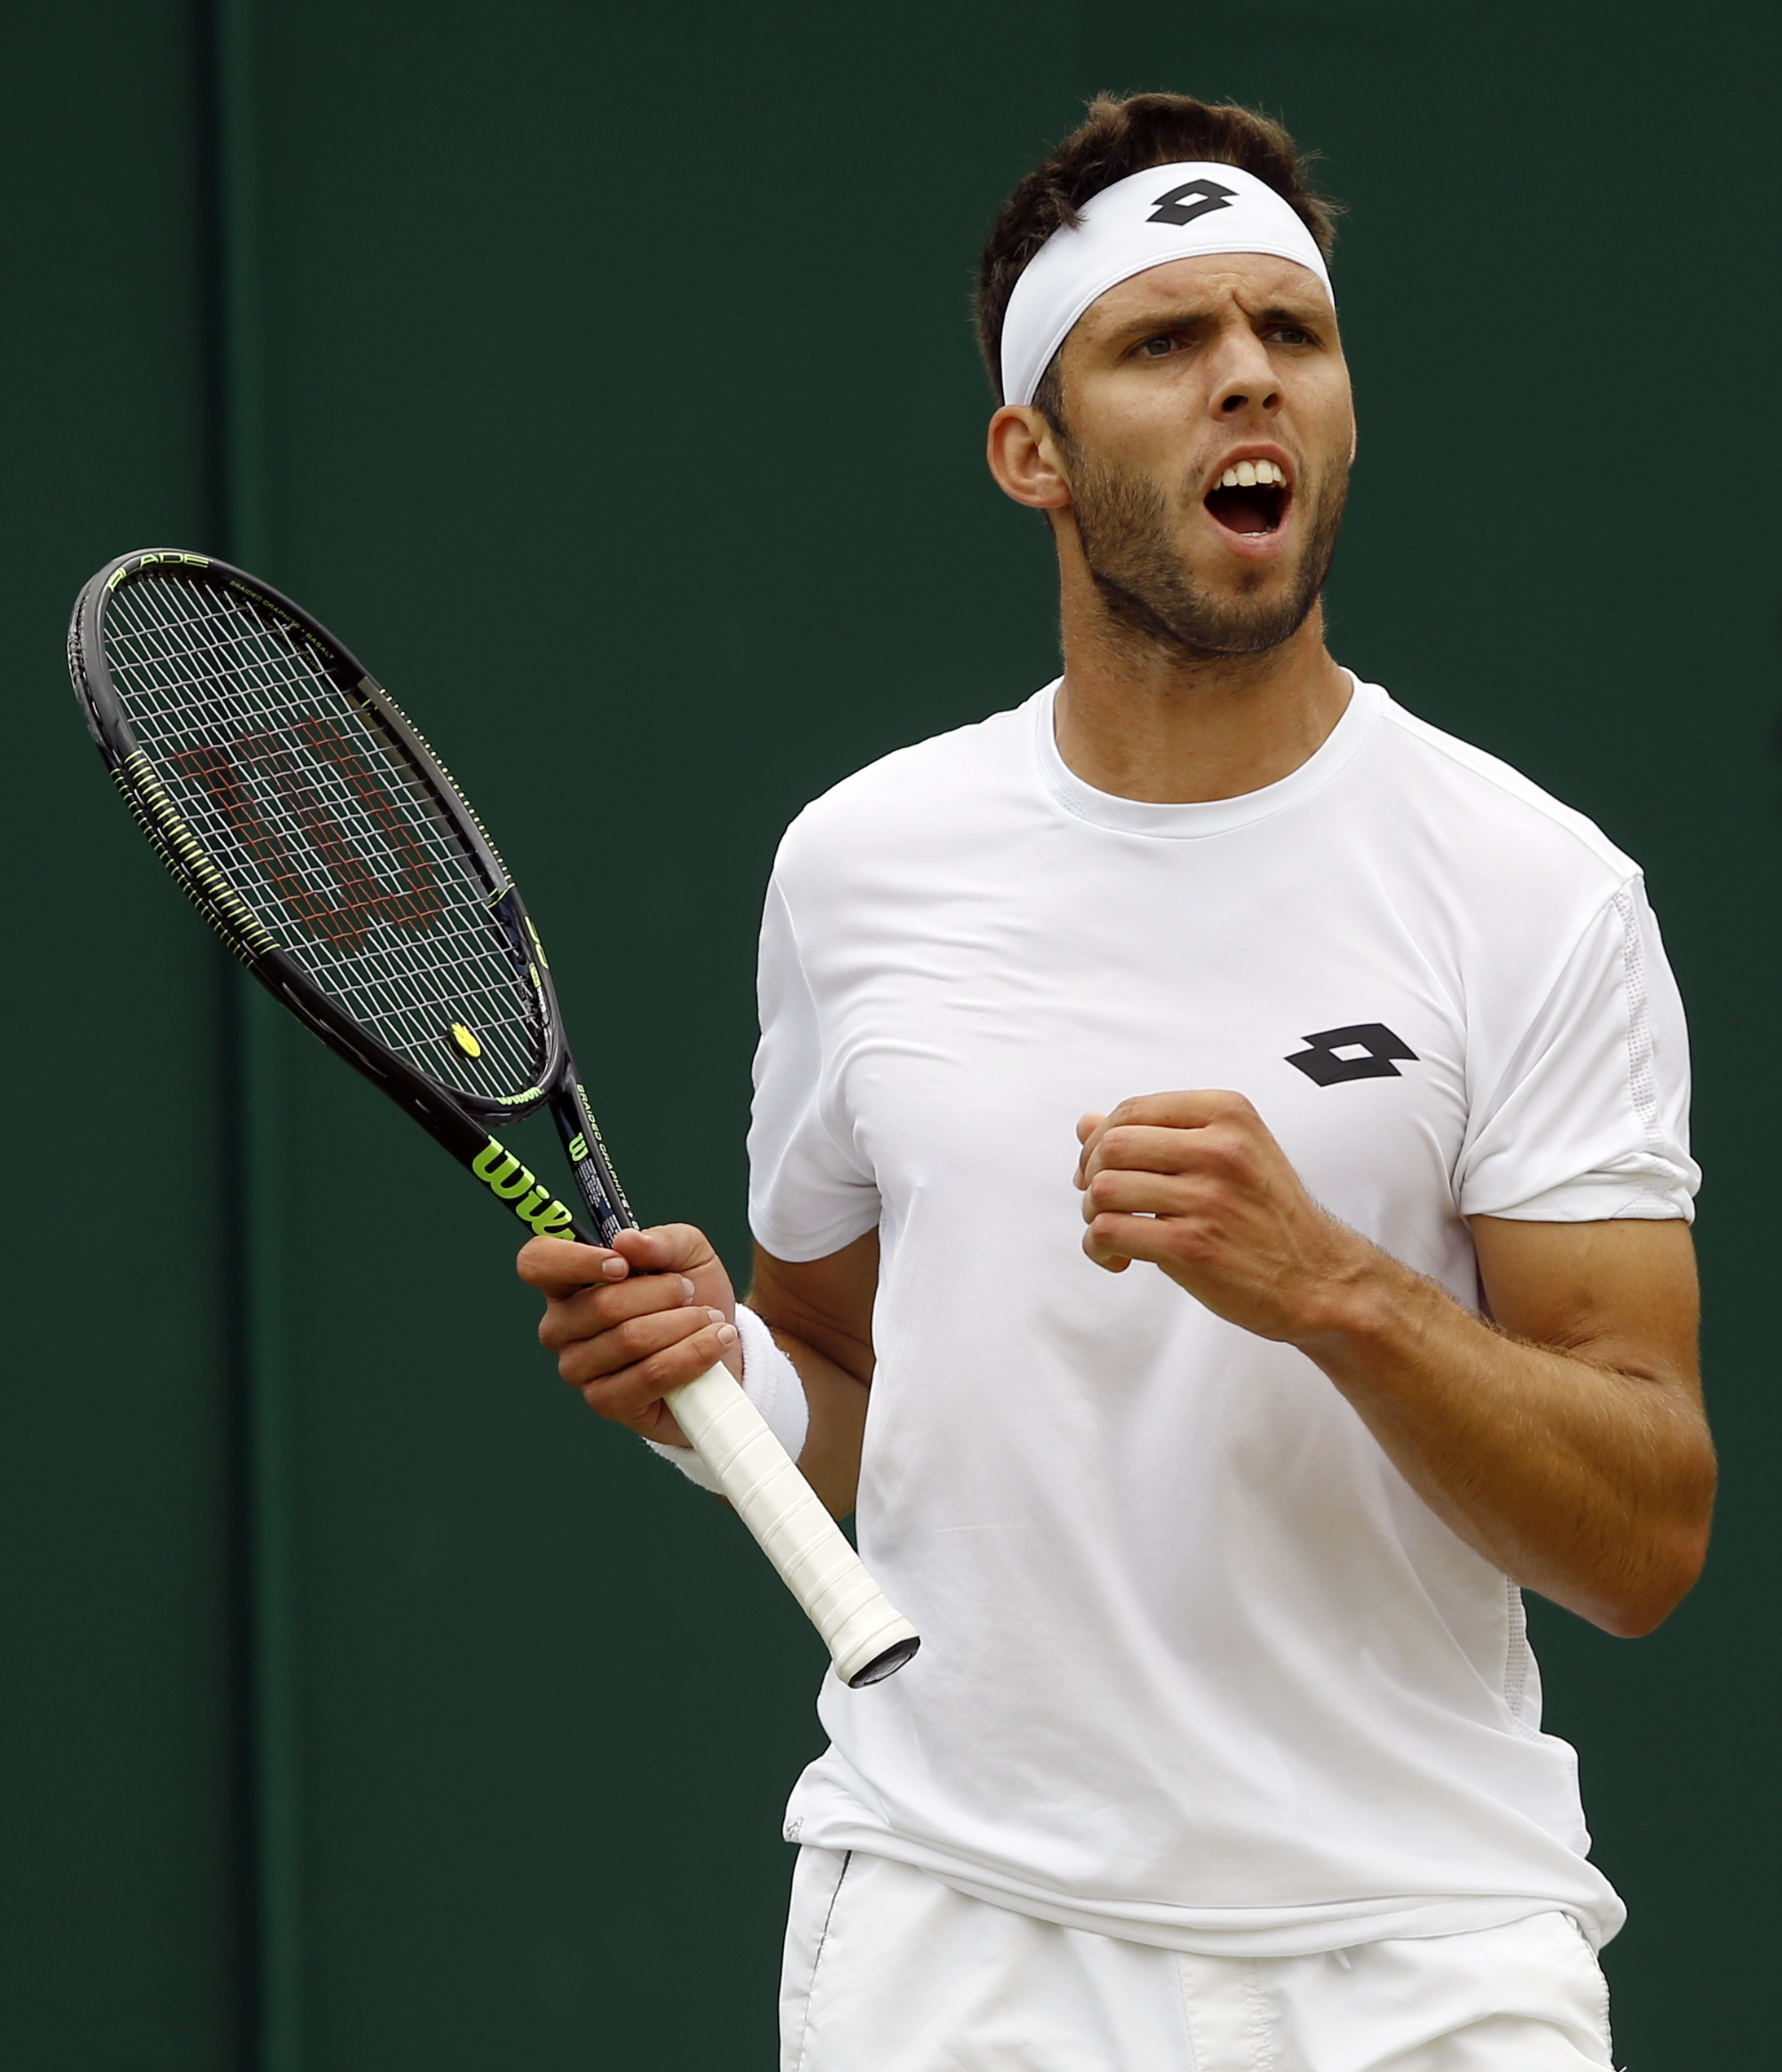 Jiri Vesely of the Czech Republic celebrates a point against Tomas Berdych of the Czech Republic during their men's singles match on day nine of the Wimbledon Tennis Championships in London, Tuesday, July 5, 2016. (AP Photo/Kirsty Wigglesworth)